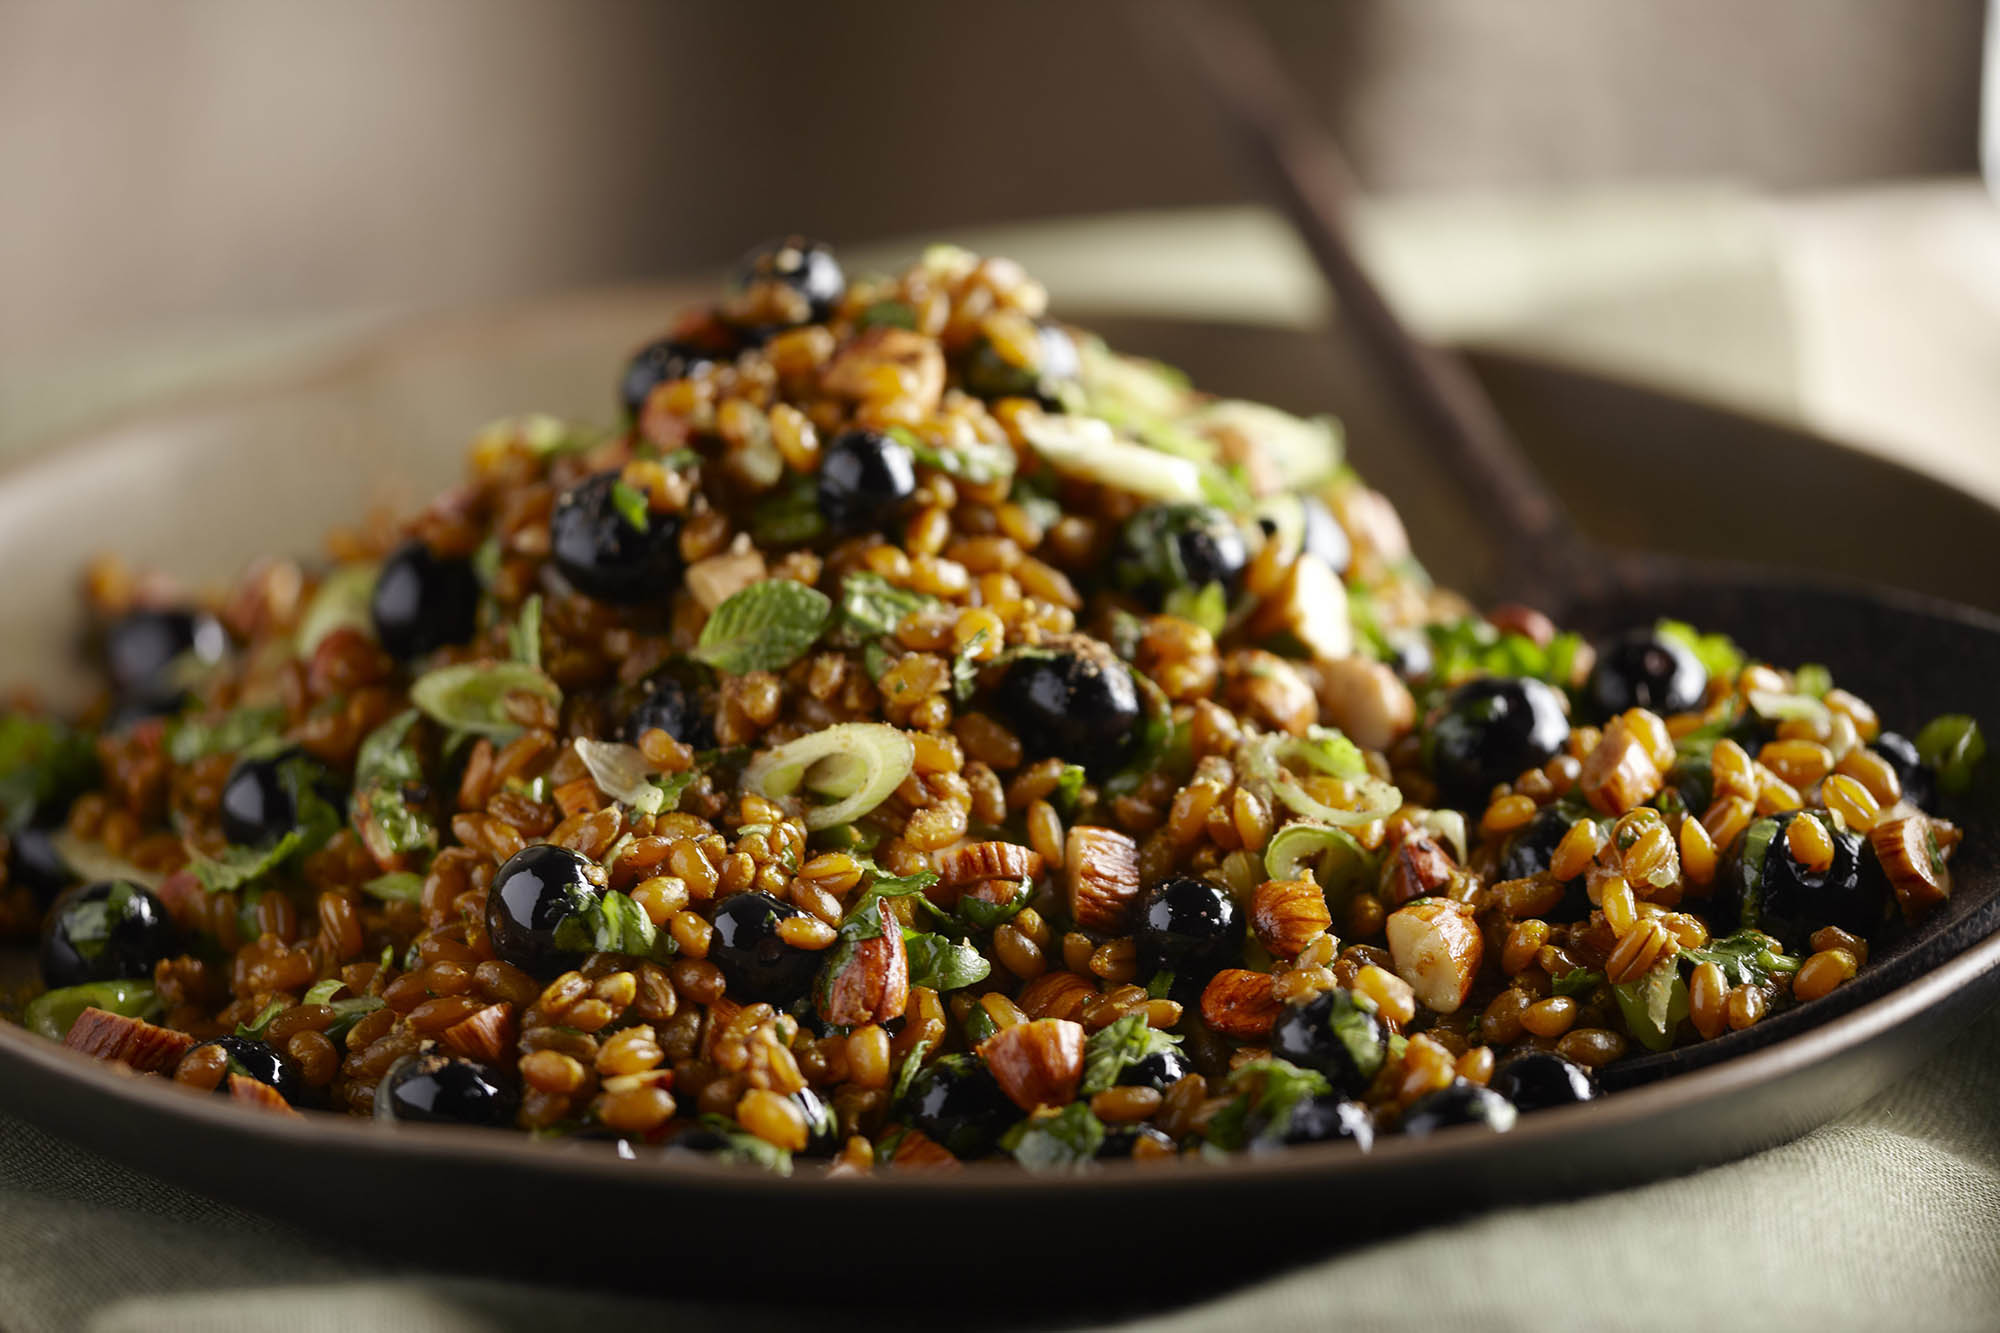 blueberries recipes wheatberries curried recipe berry wheatberry driscoll driscolls blueberry wheat berries curry salad